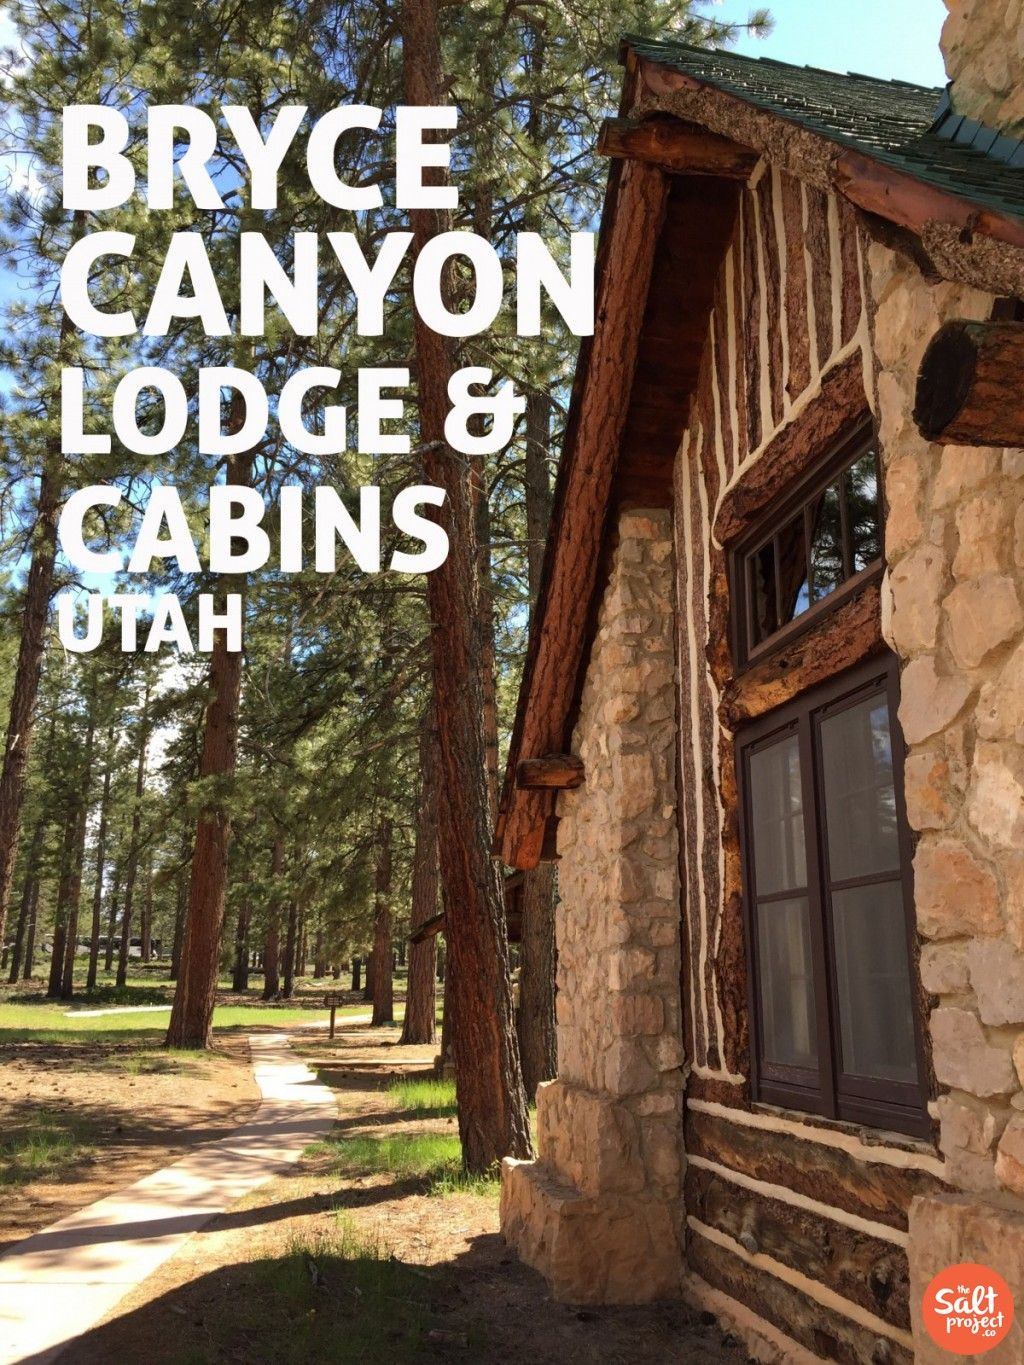 cabin in red horse cabins watch steven canyon lodge sunn grand angel at bright